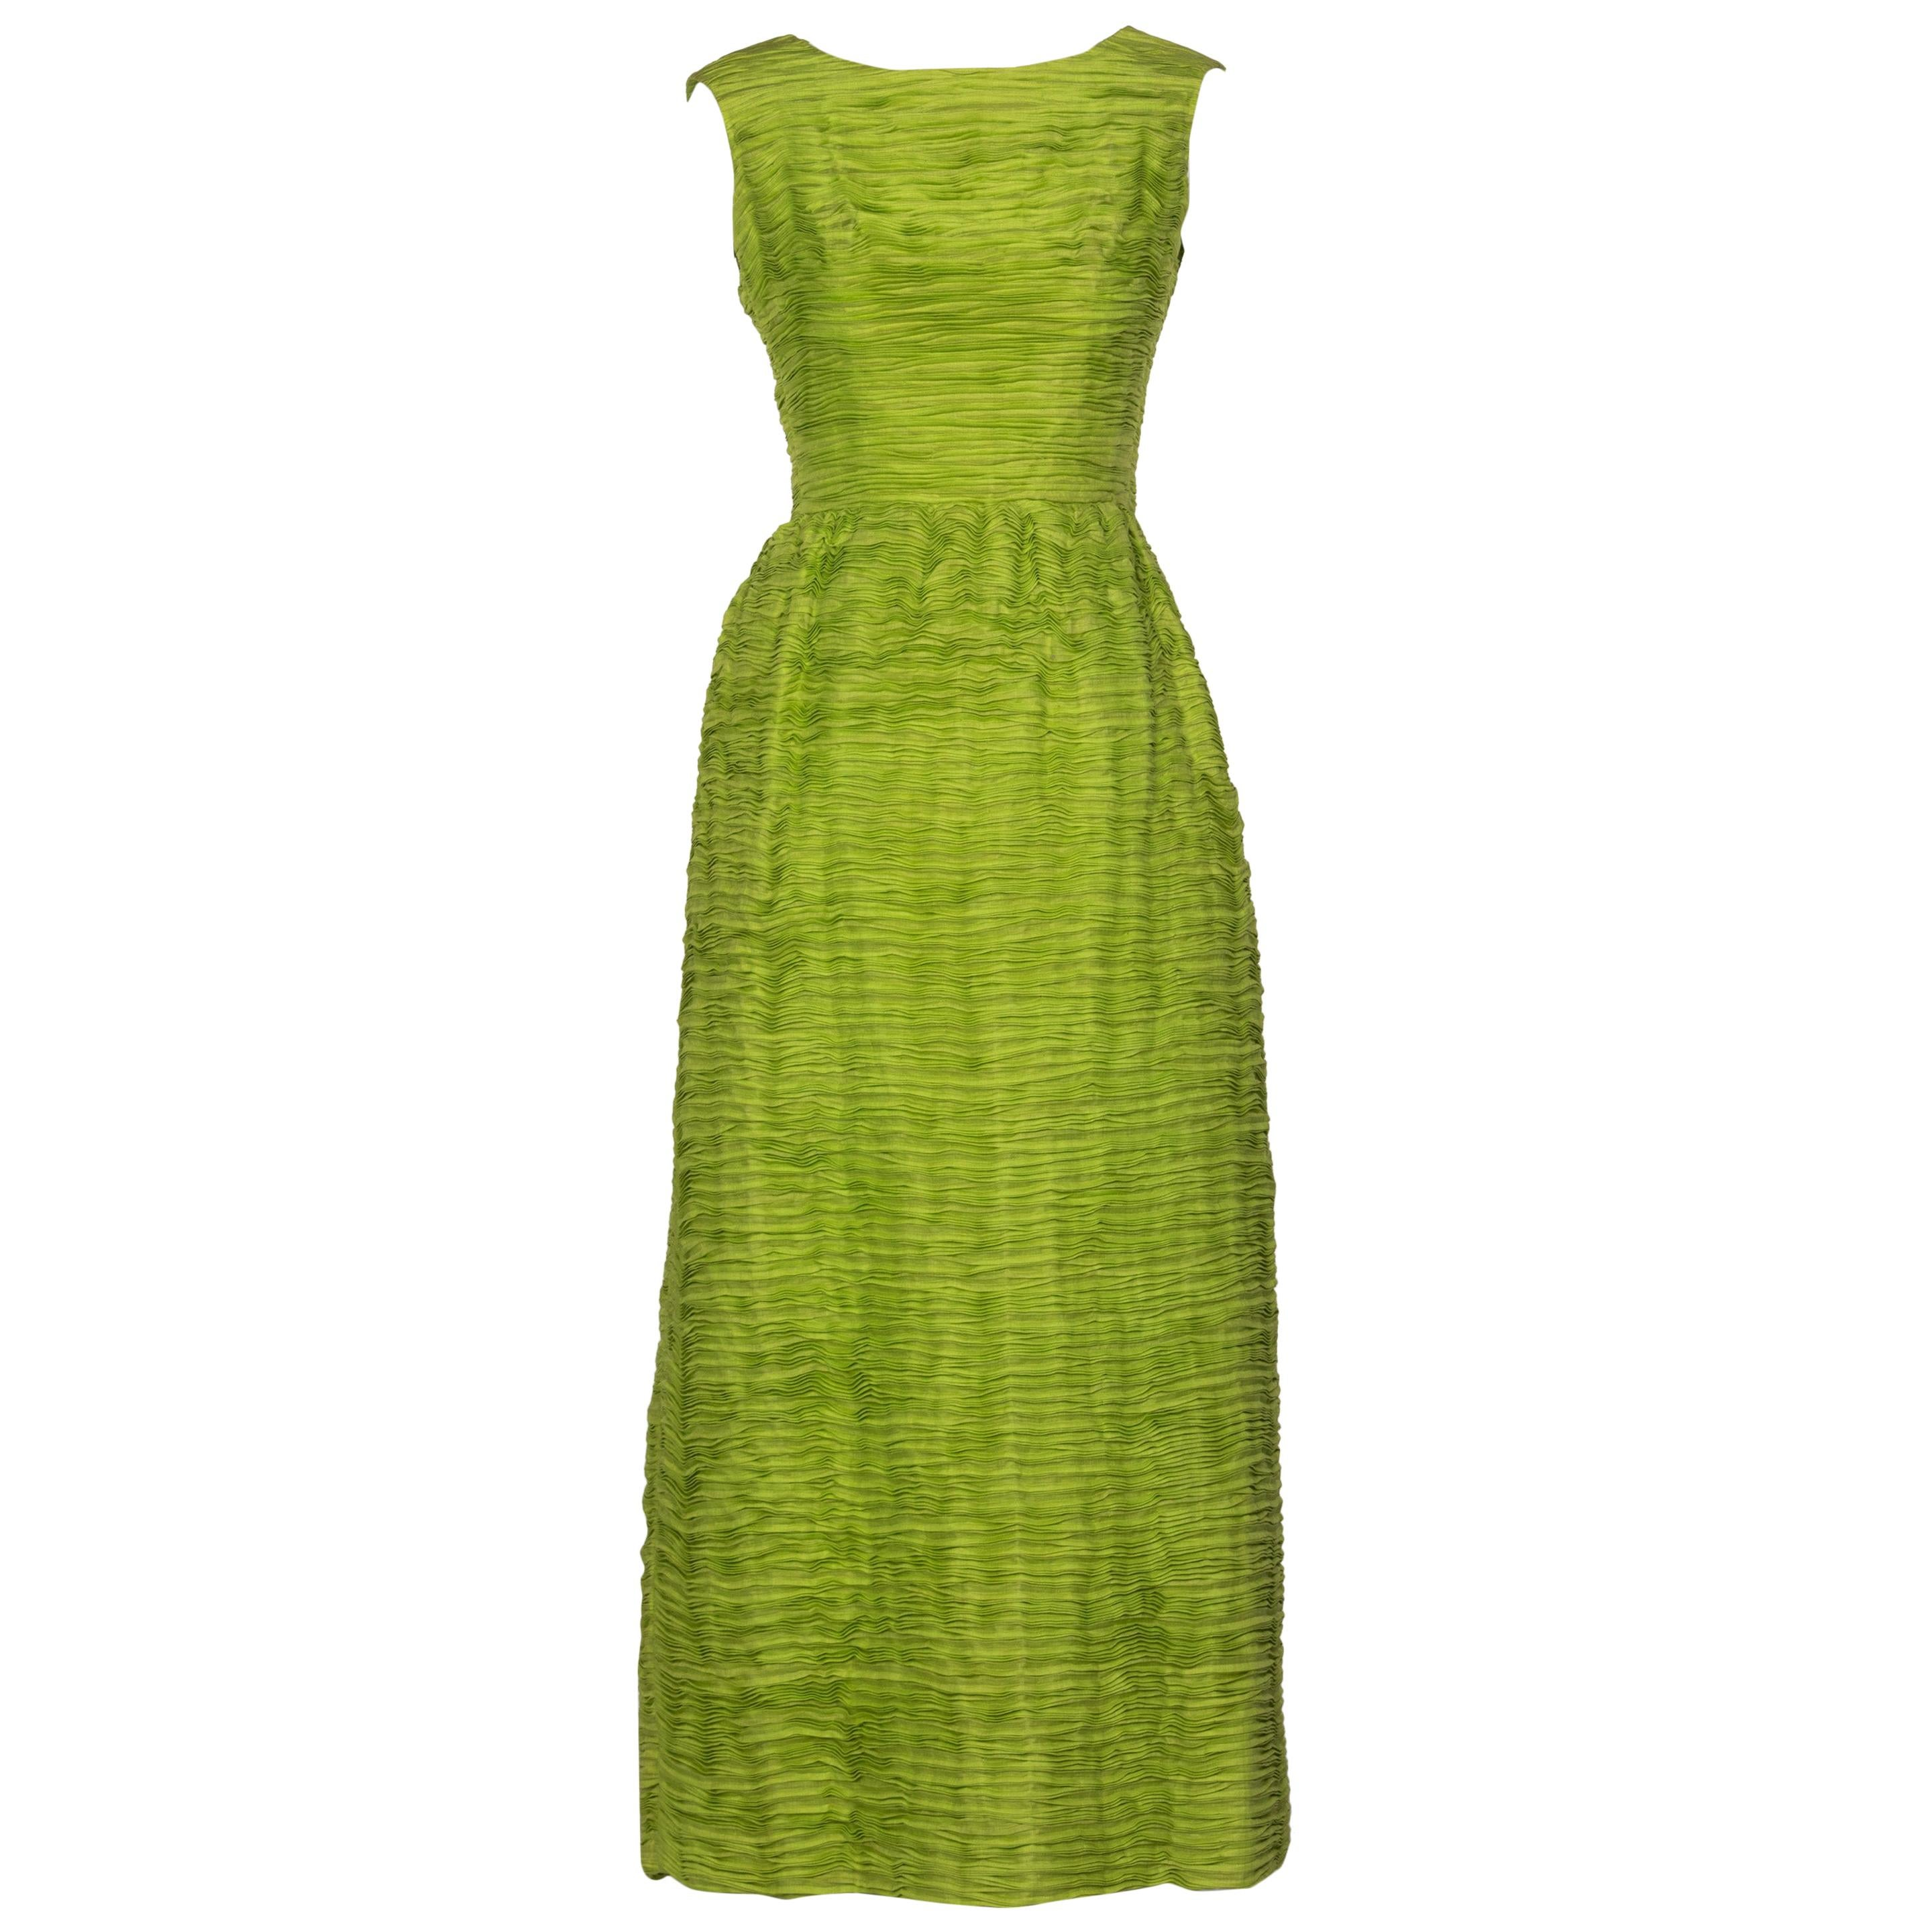 Sybil Connolly Couture Green Pleated Linen Dress, 1960s